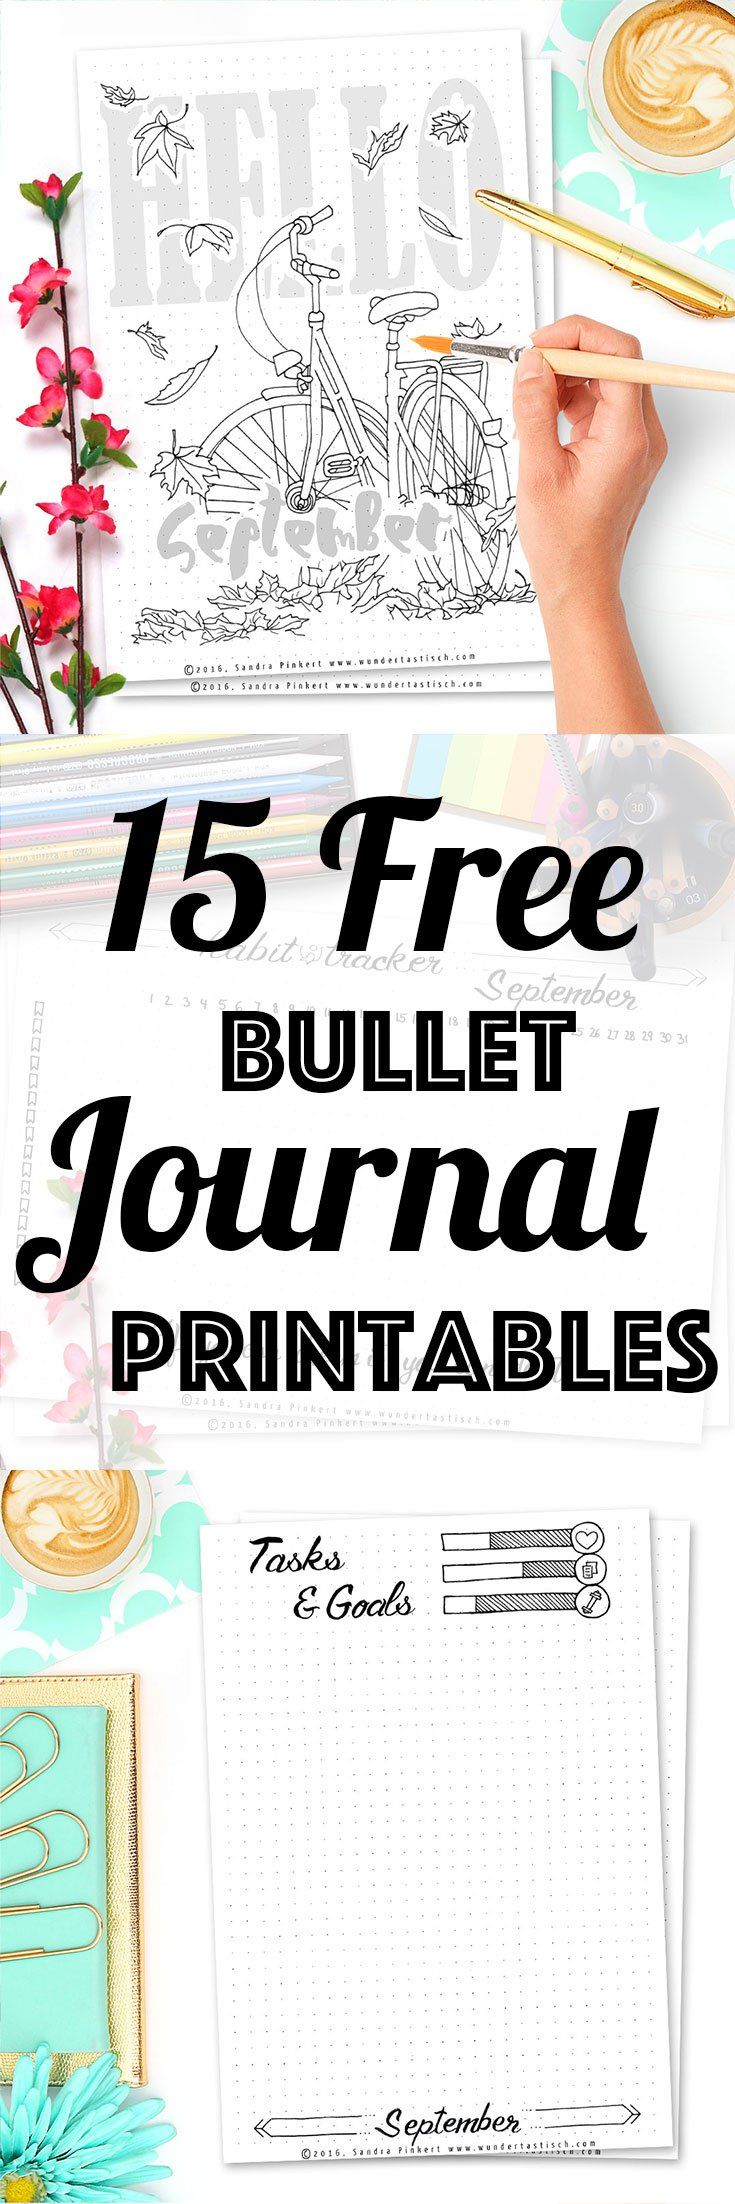 15 Free Printable Pages For Your Bullet Journal SetUp September 2016. Including…